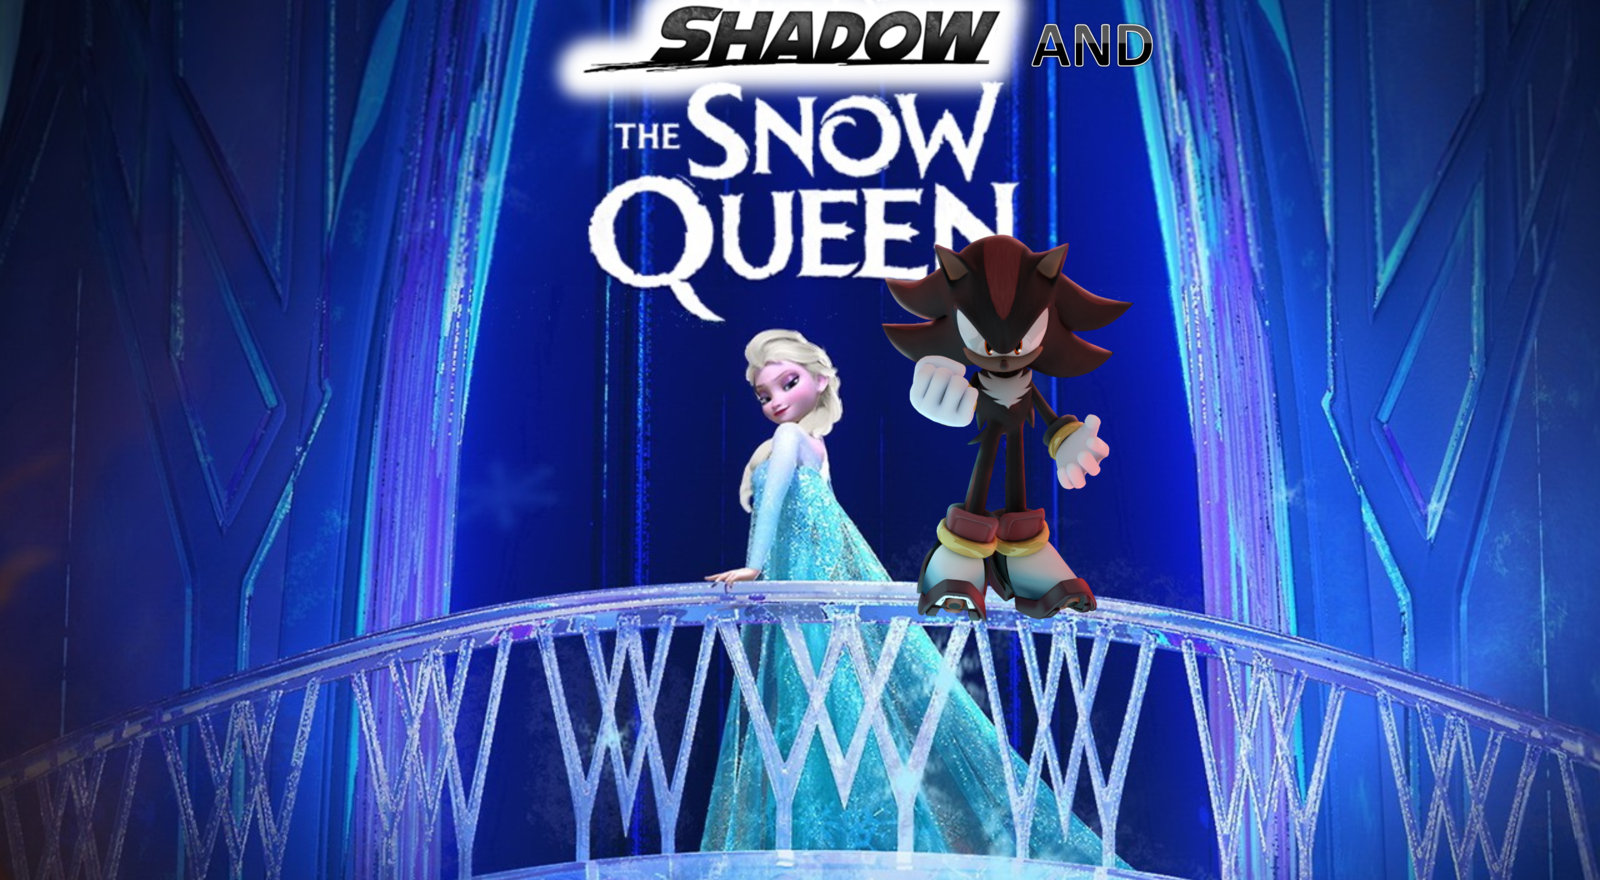 Shadow and the Snow Queen Wallpaper Game by Elsa Shadow on deviantART 1600x880